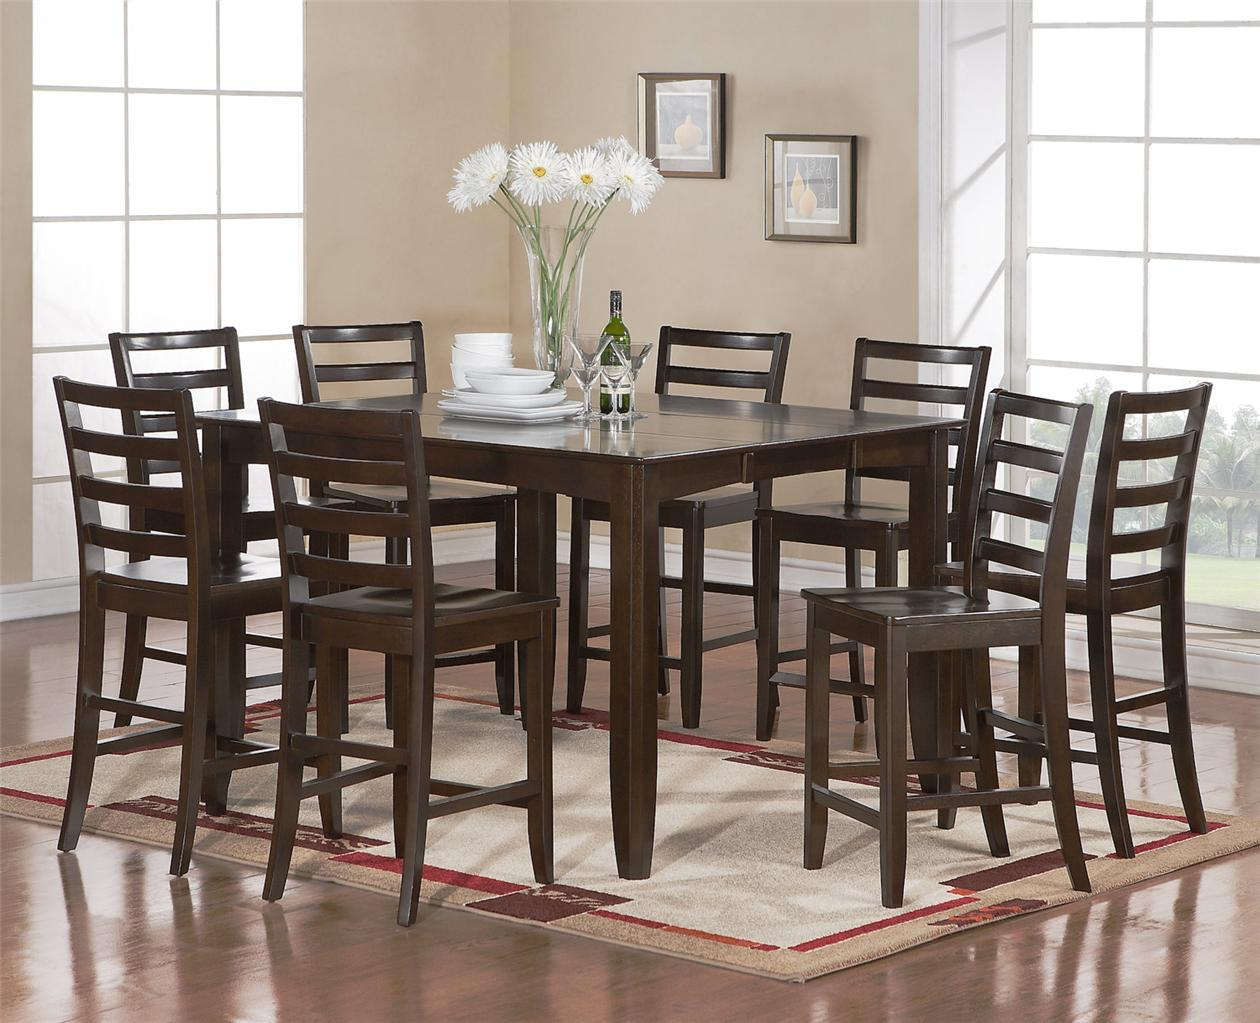 details about 9 pc square counter height dining room table with 8 wood